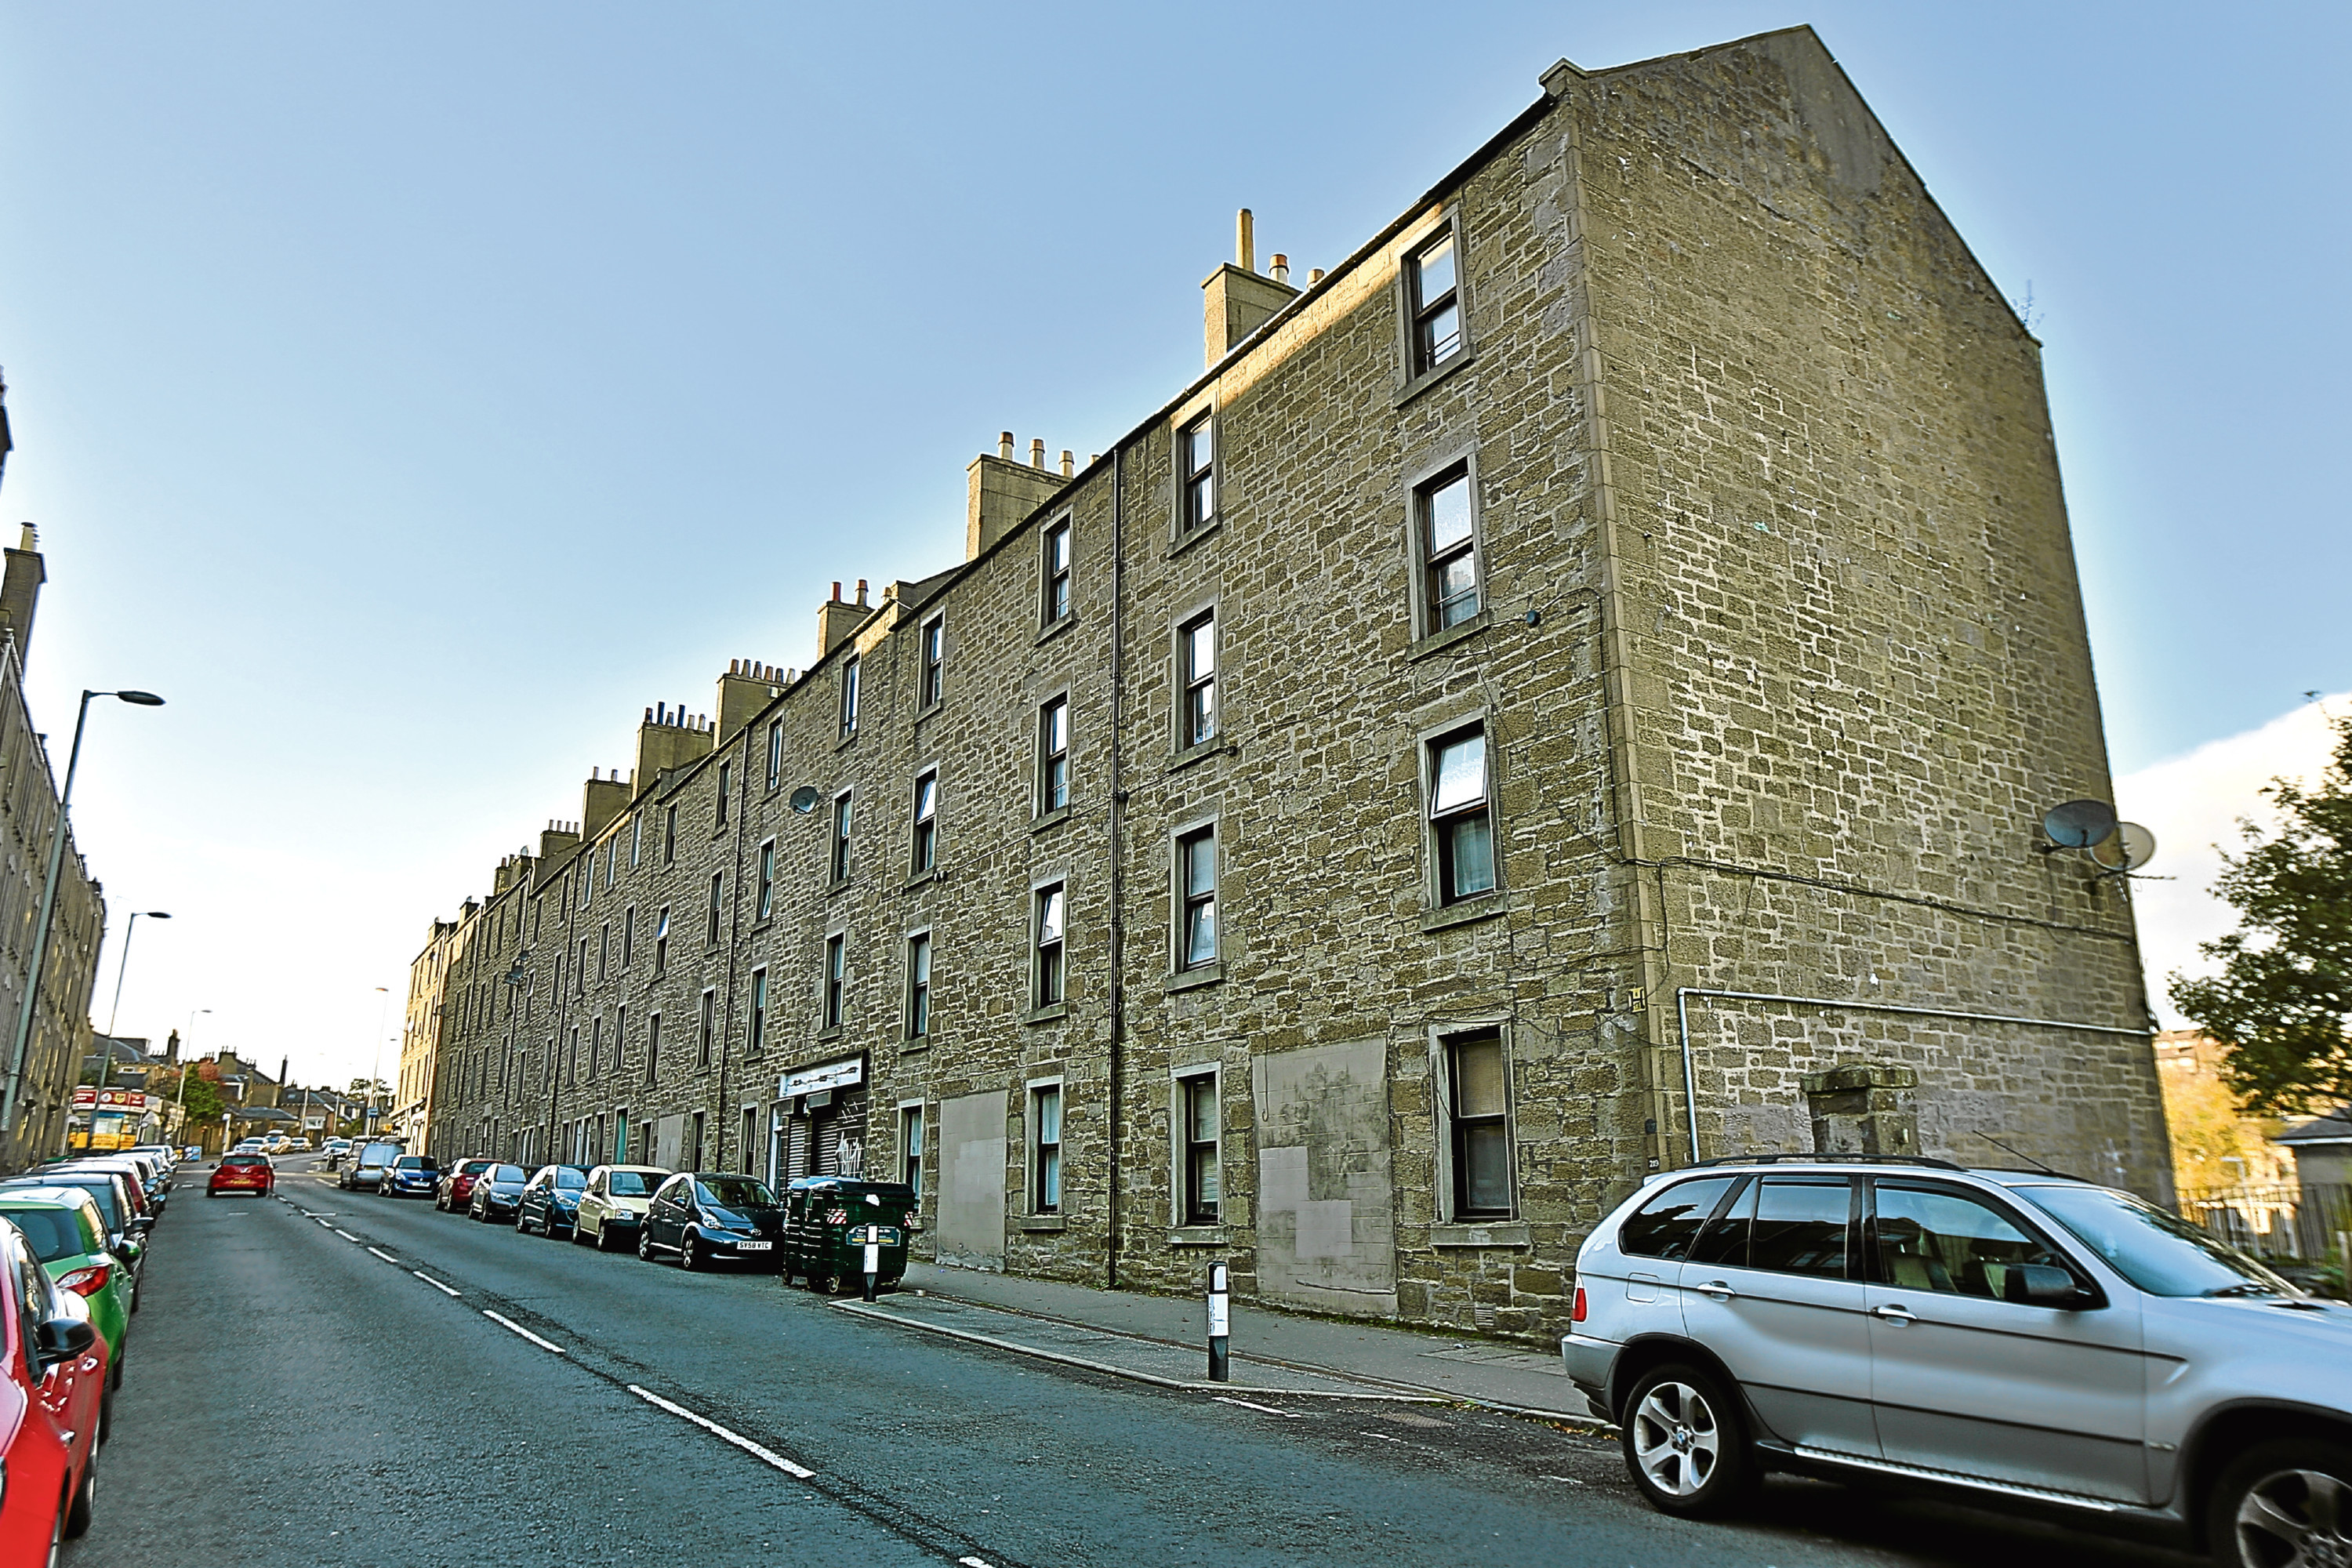 The block of flats under threat at Blackness Road.